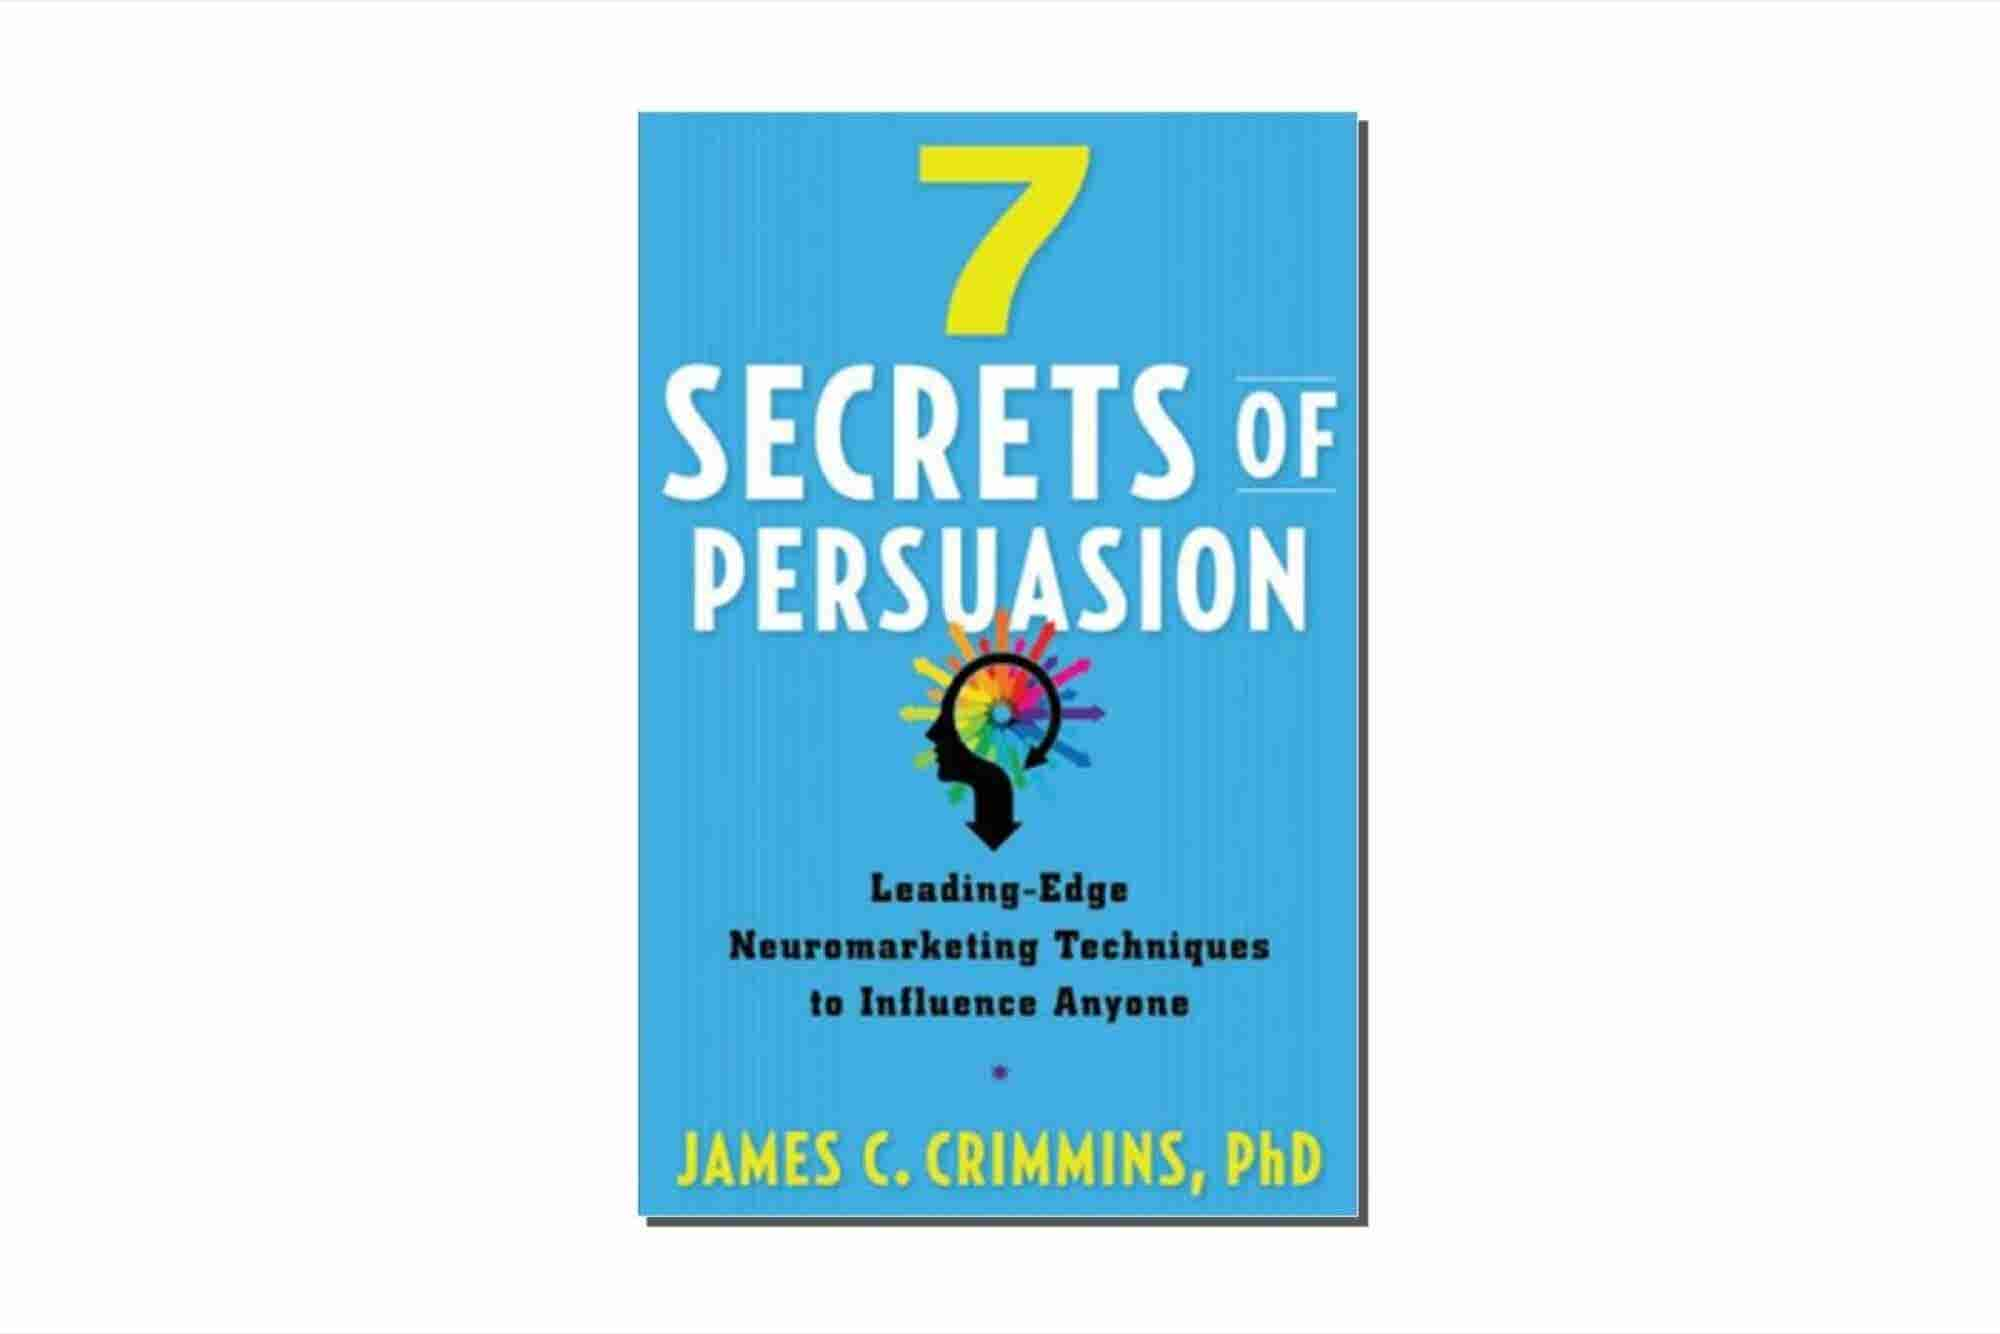 '7 Secrets of Persuasion' eBook Free For a Limited Time